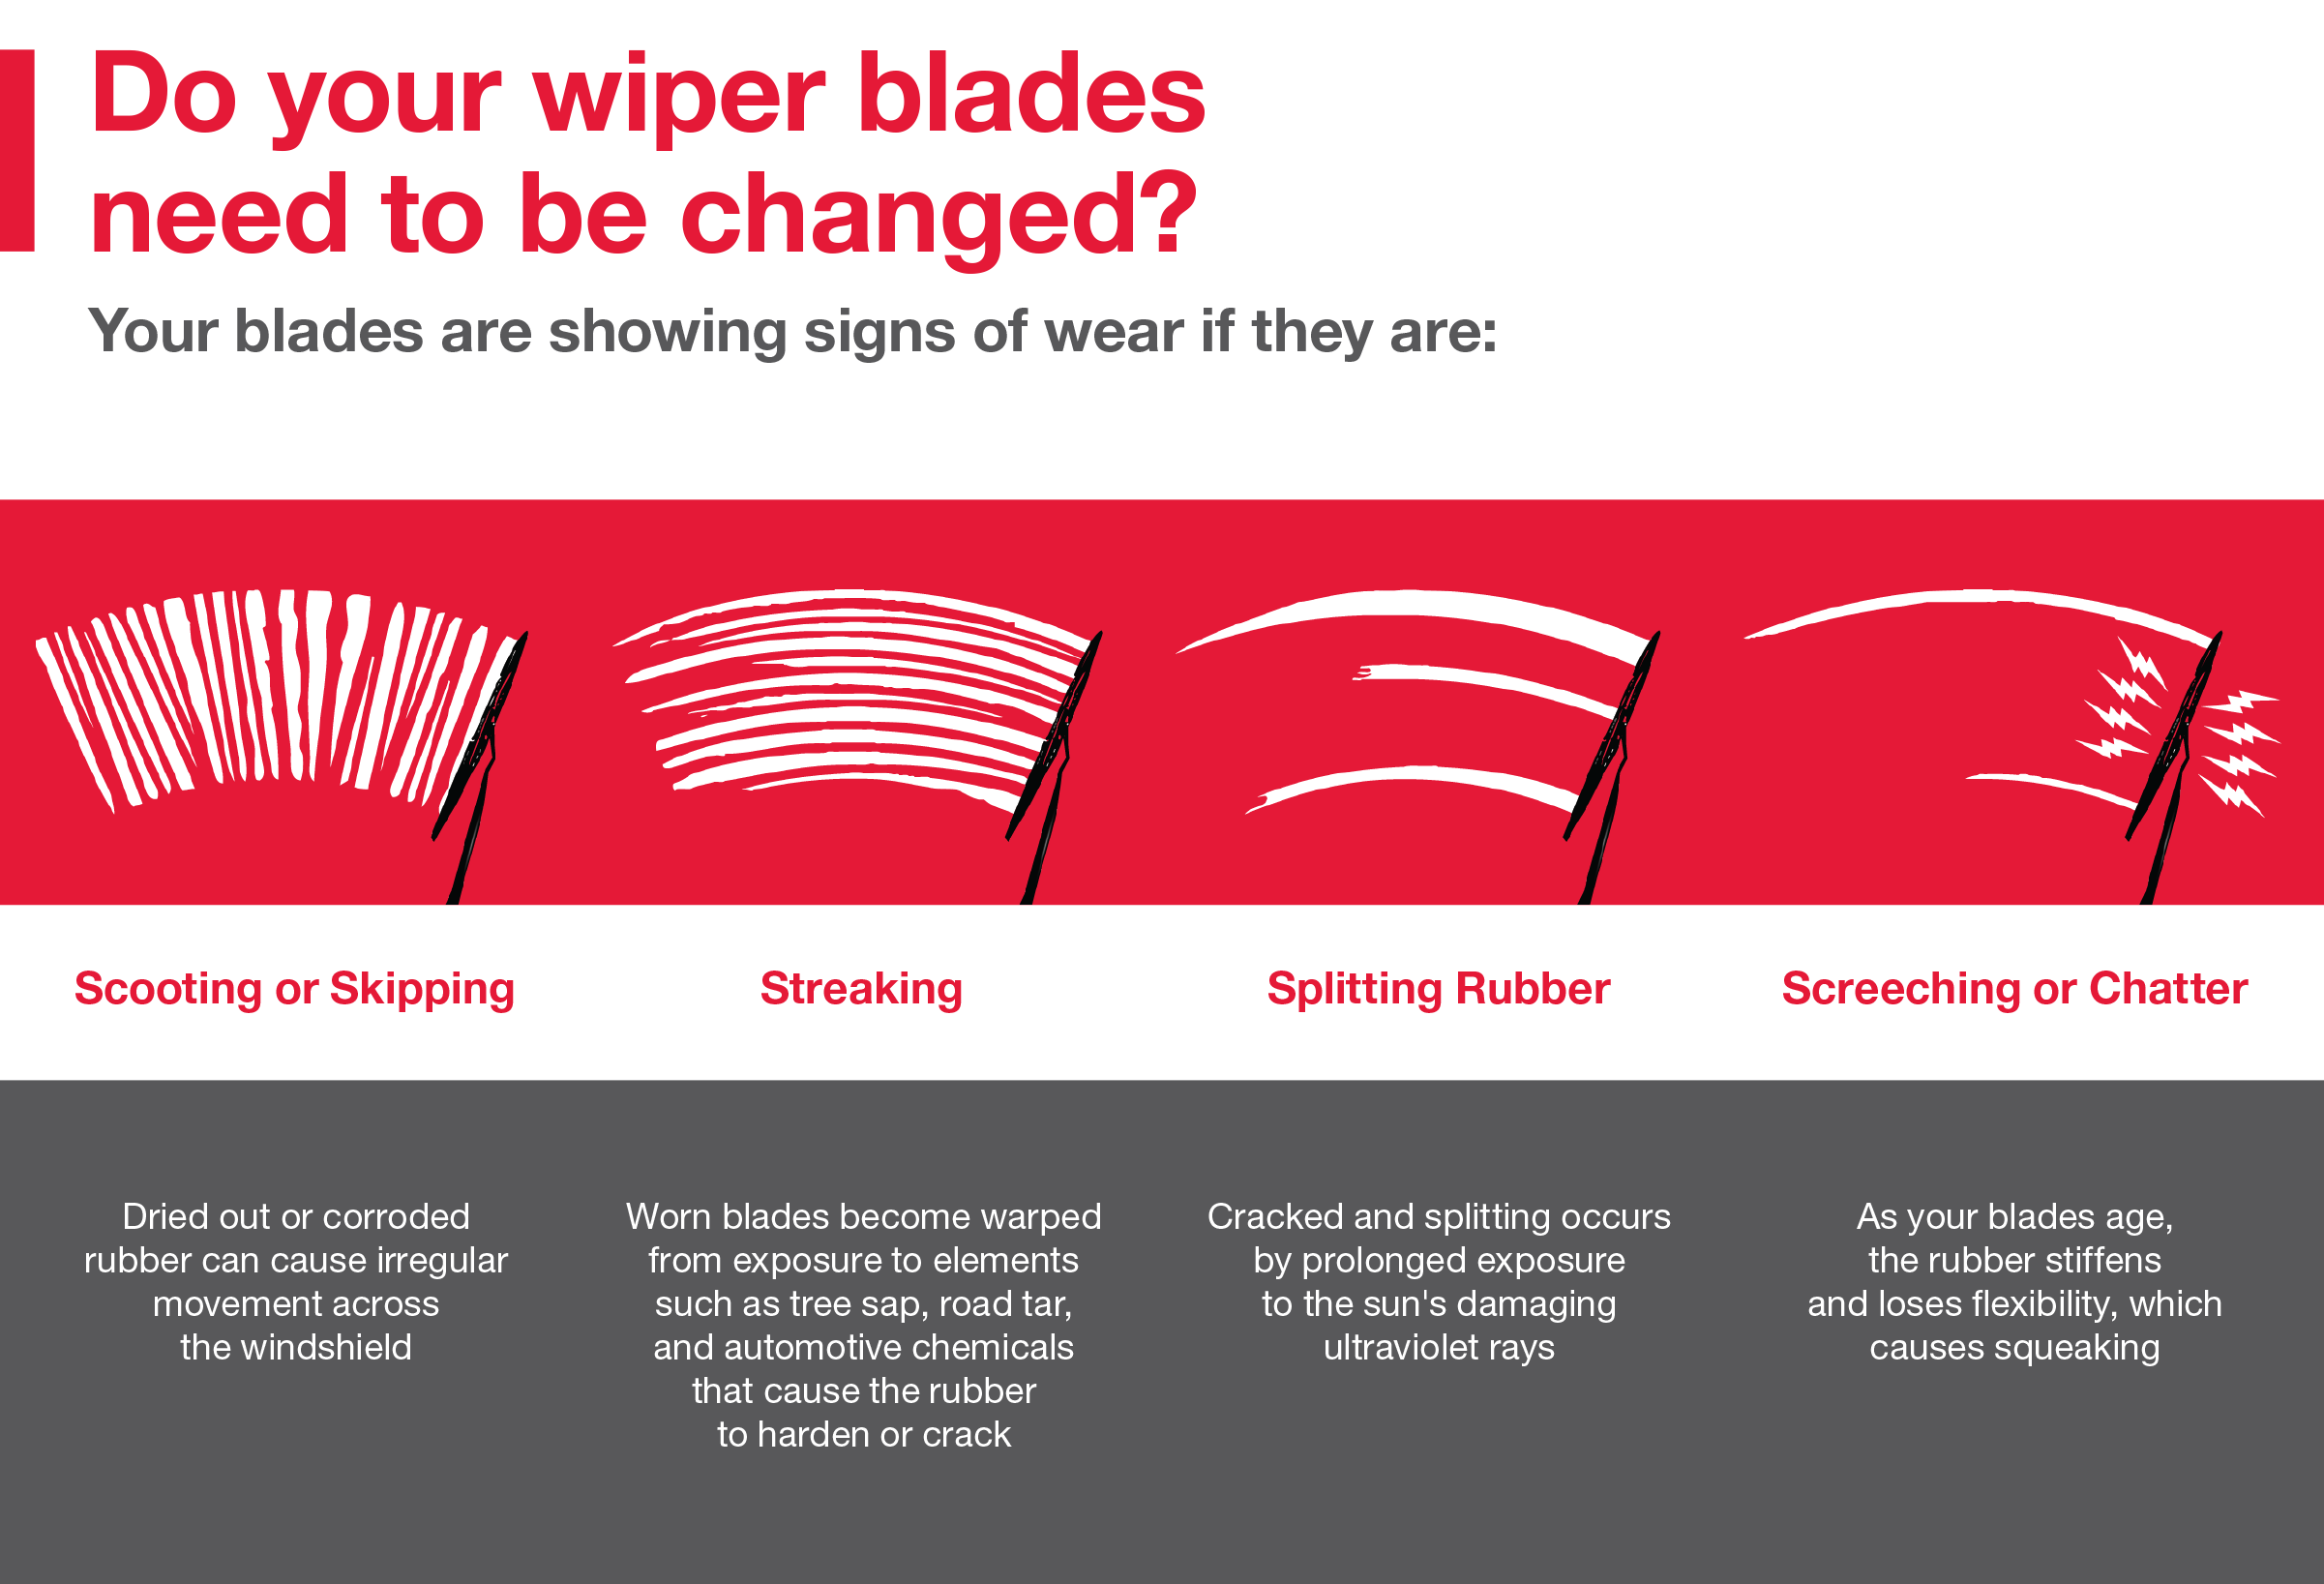 Do your wiper blades need to be changed? Call your local dealer for more info: (505) 516-0495